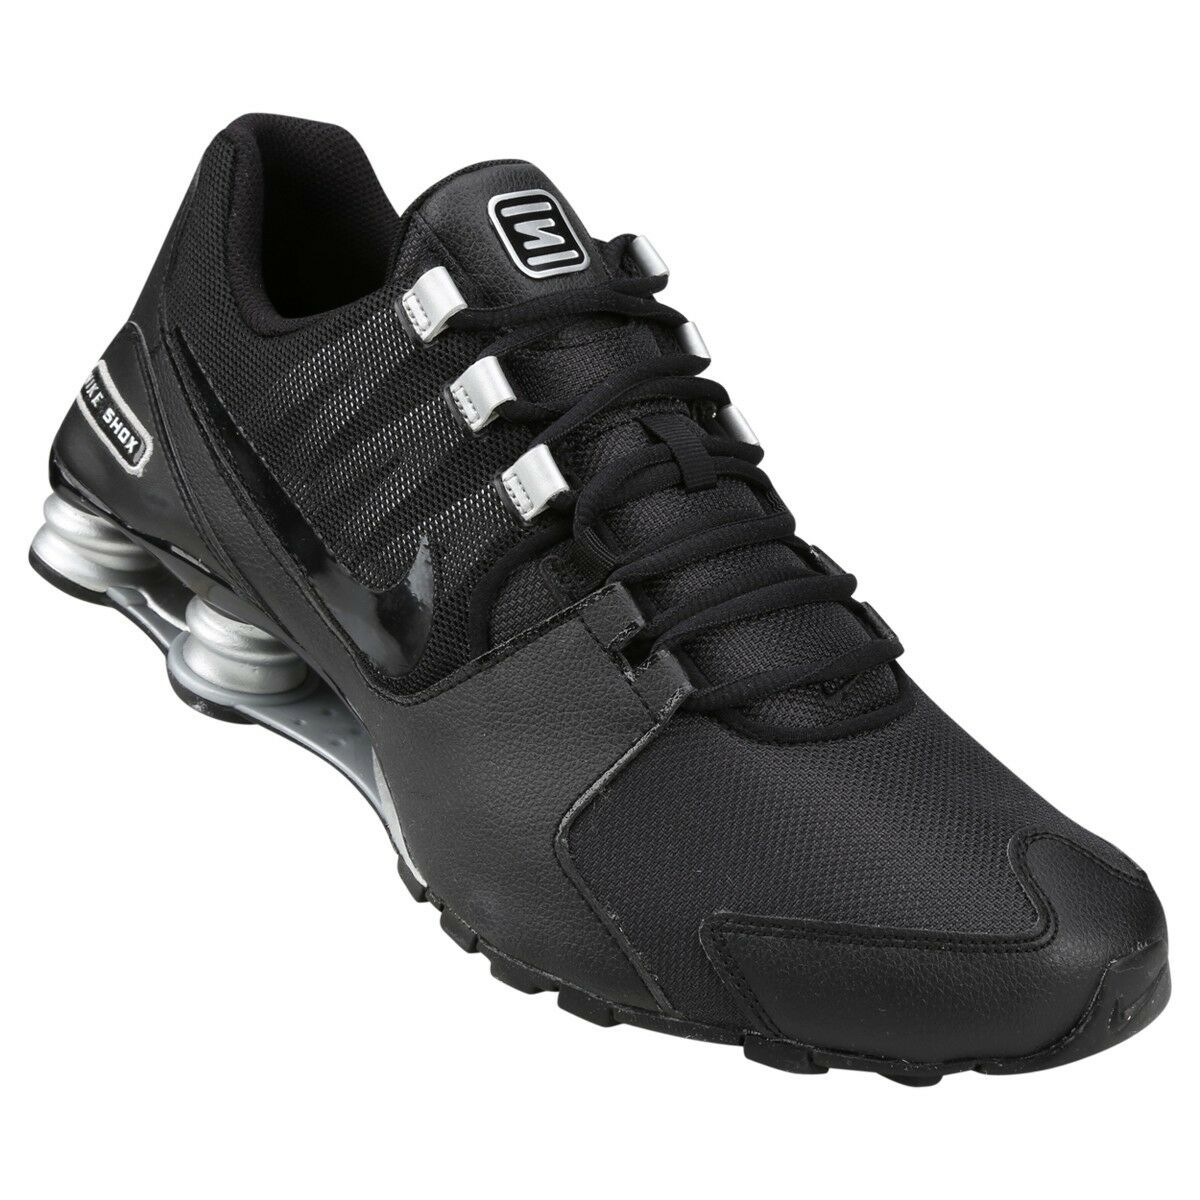 Mens Nike Shox Avenue Premium Sneakers New, Black   Silver 833583-001